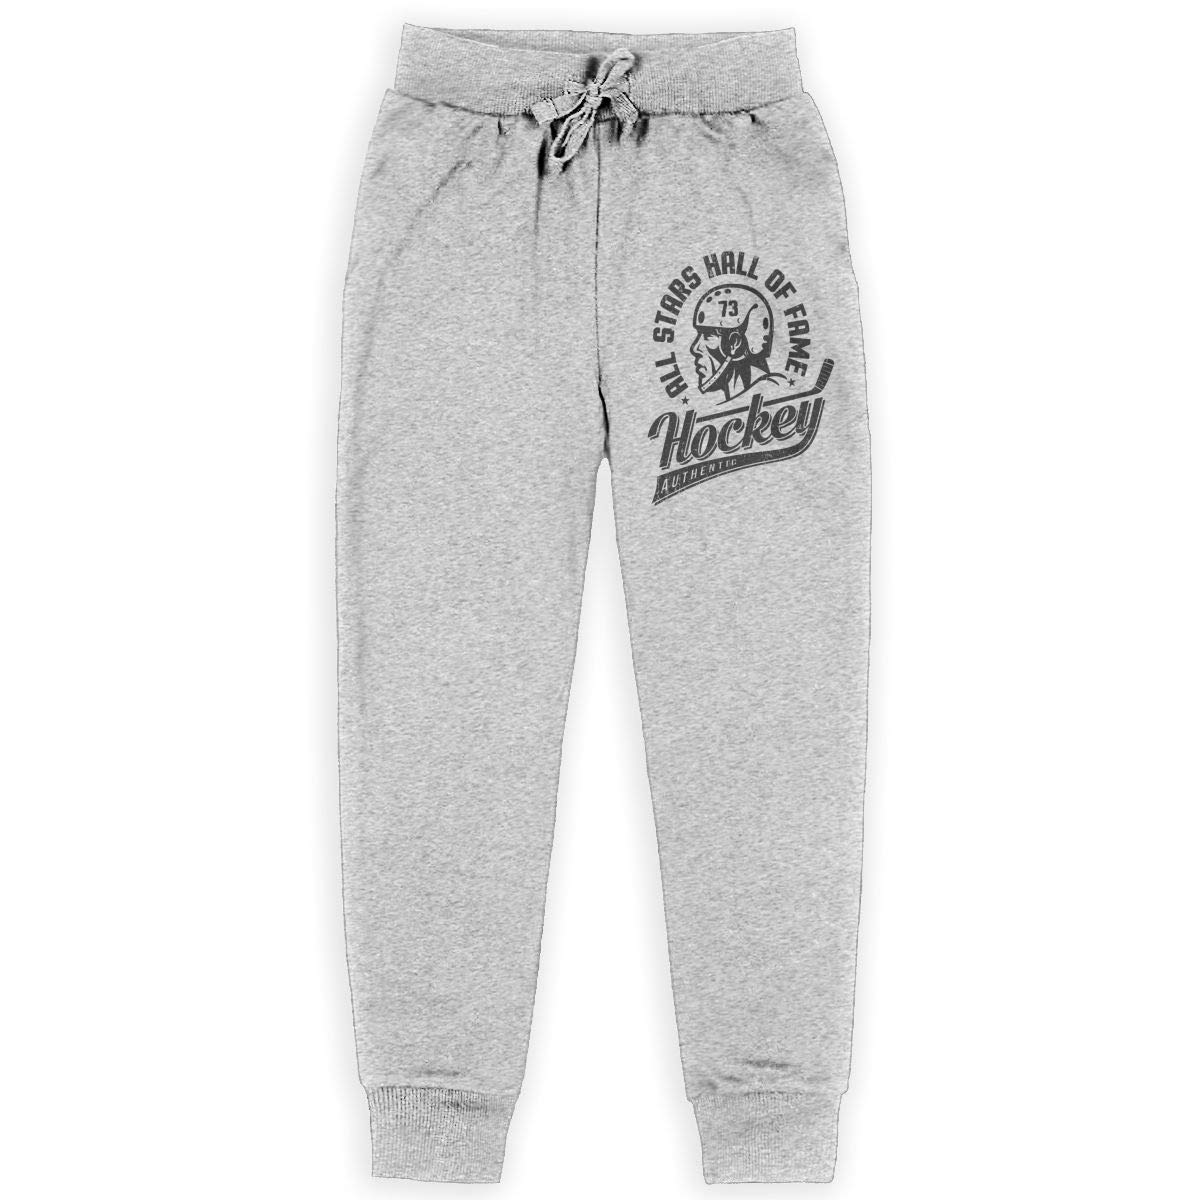 Boys Fashion Jogger Sweatpants Hockey Player in Helmet Logo Adjustable Waist Running Pants with Pocket